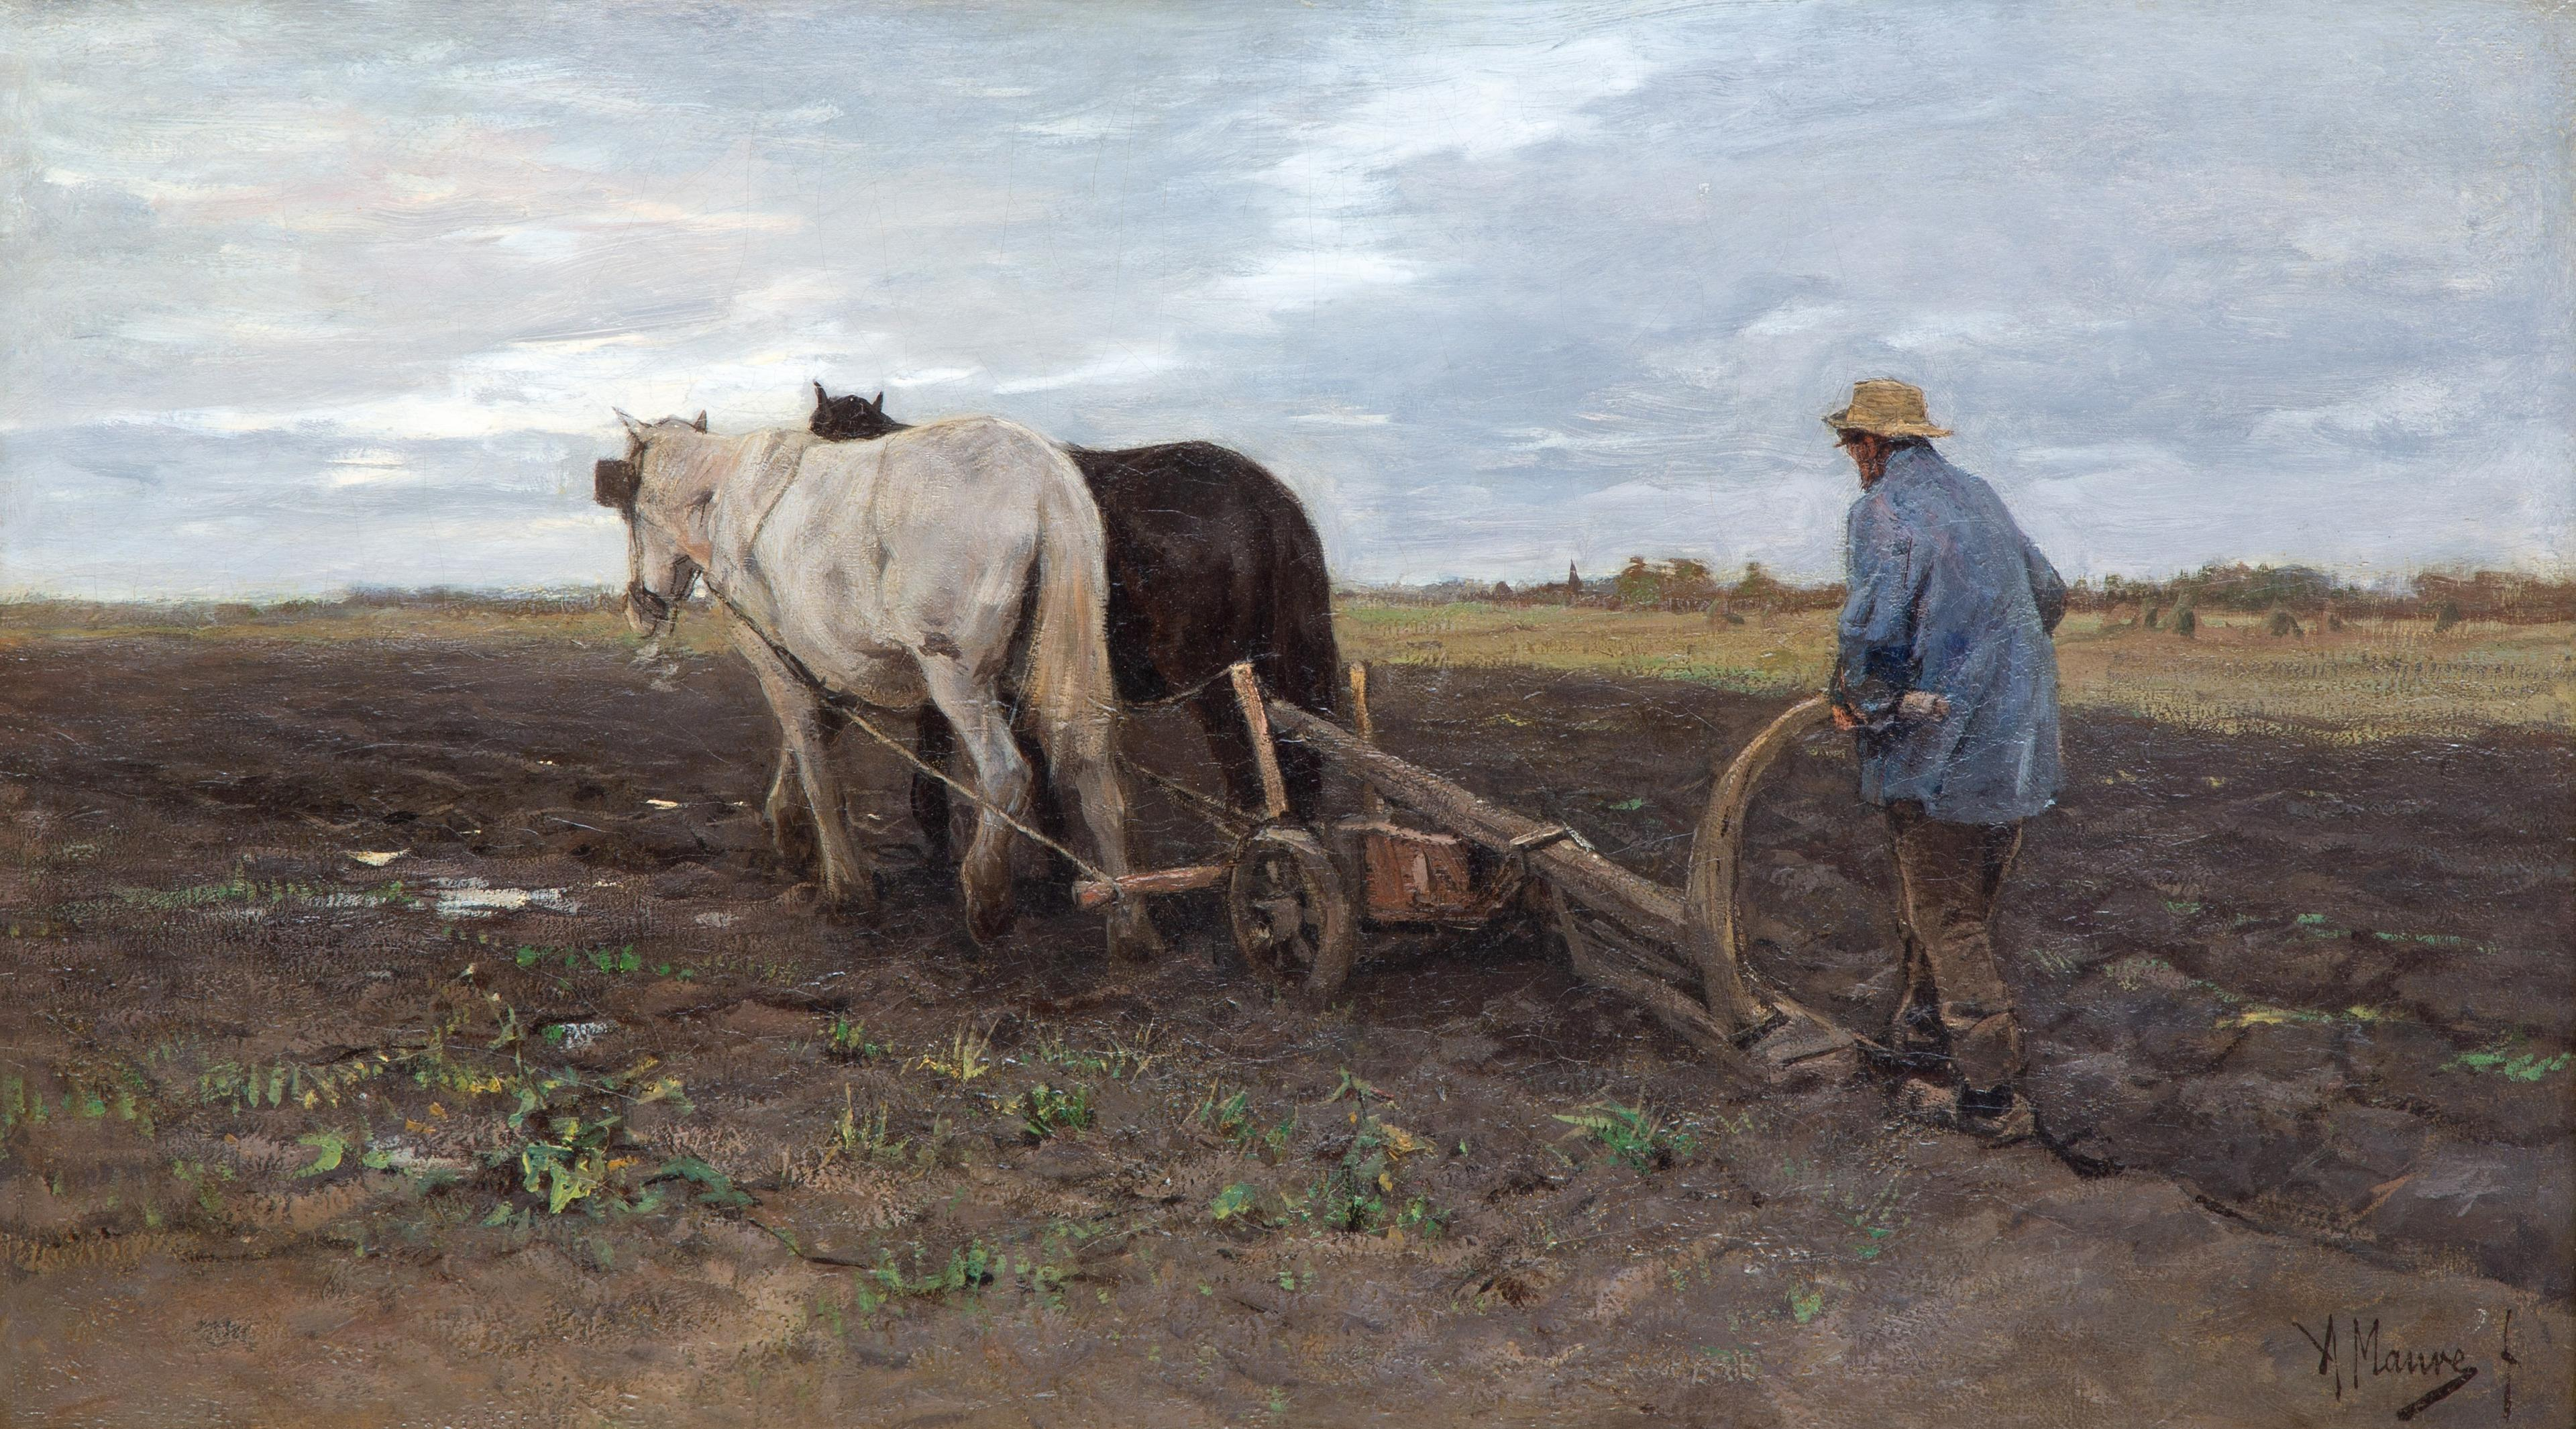 Ploughing horses on the field